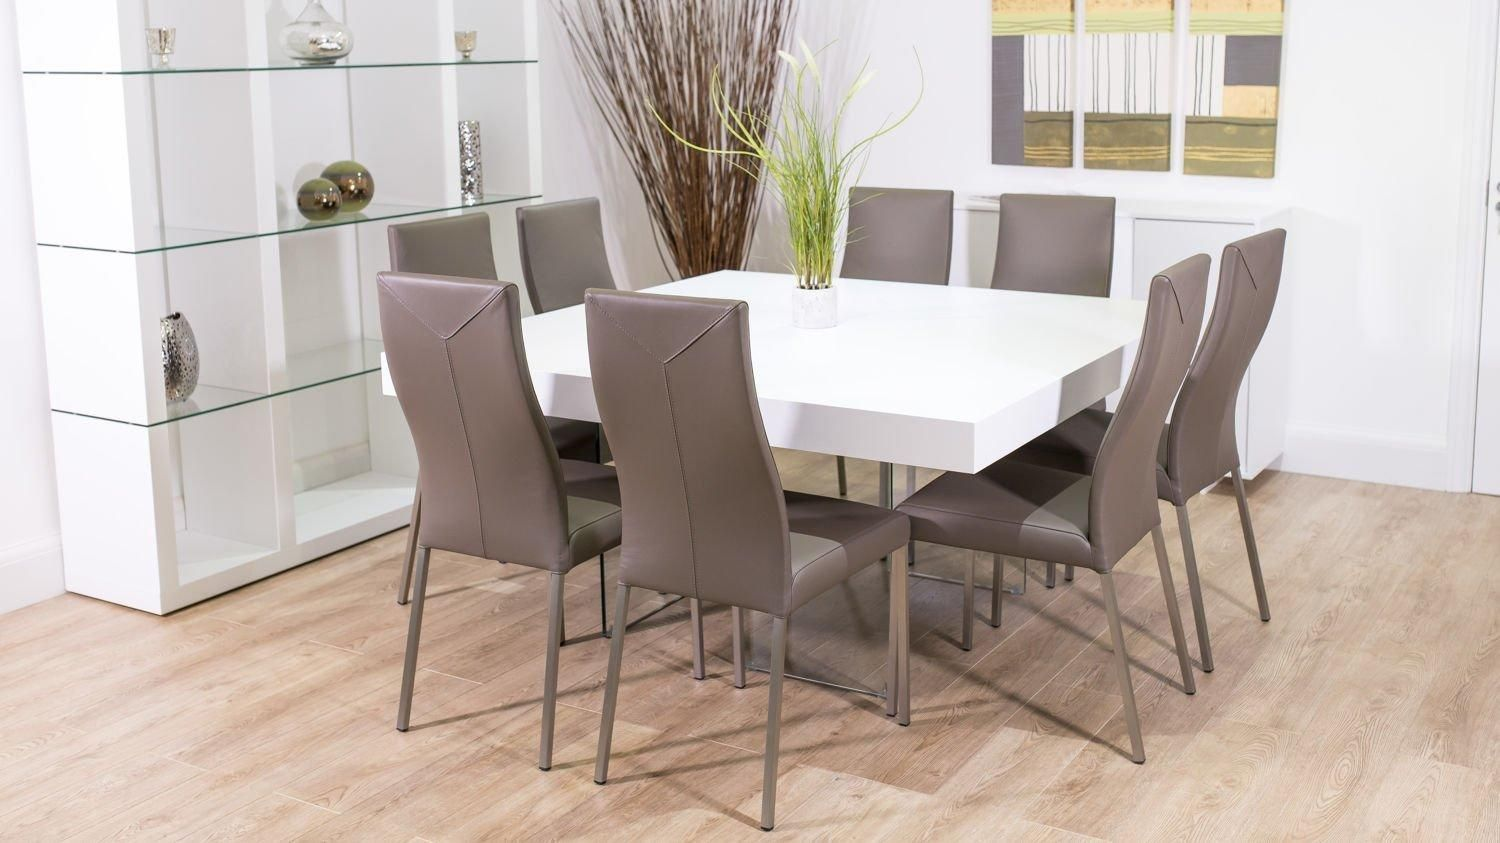 Dining Table  Our Home  Pinterest  Farmhouse Dining Chairs Prepossessing Dining Room Tables For Sale Cheap 2018